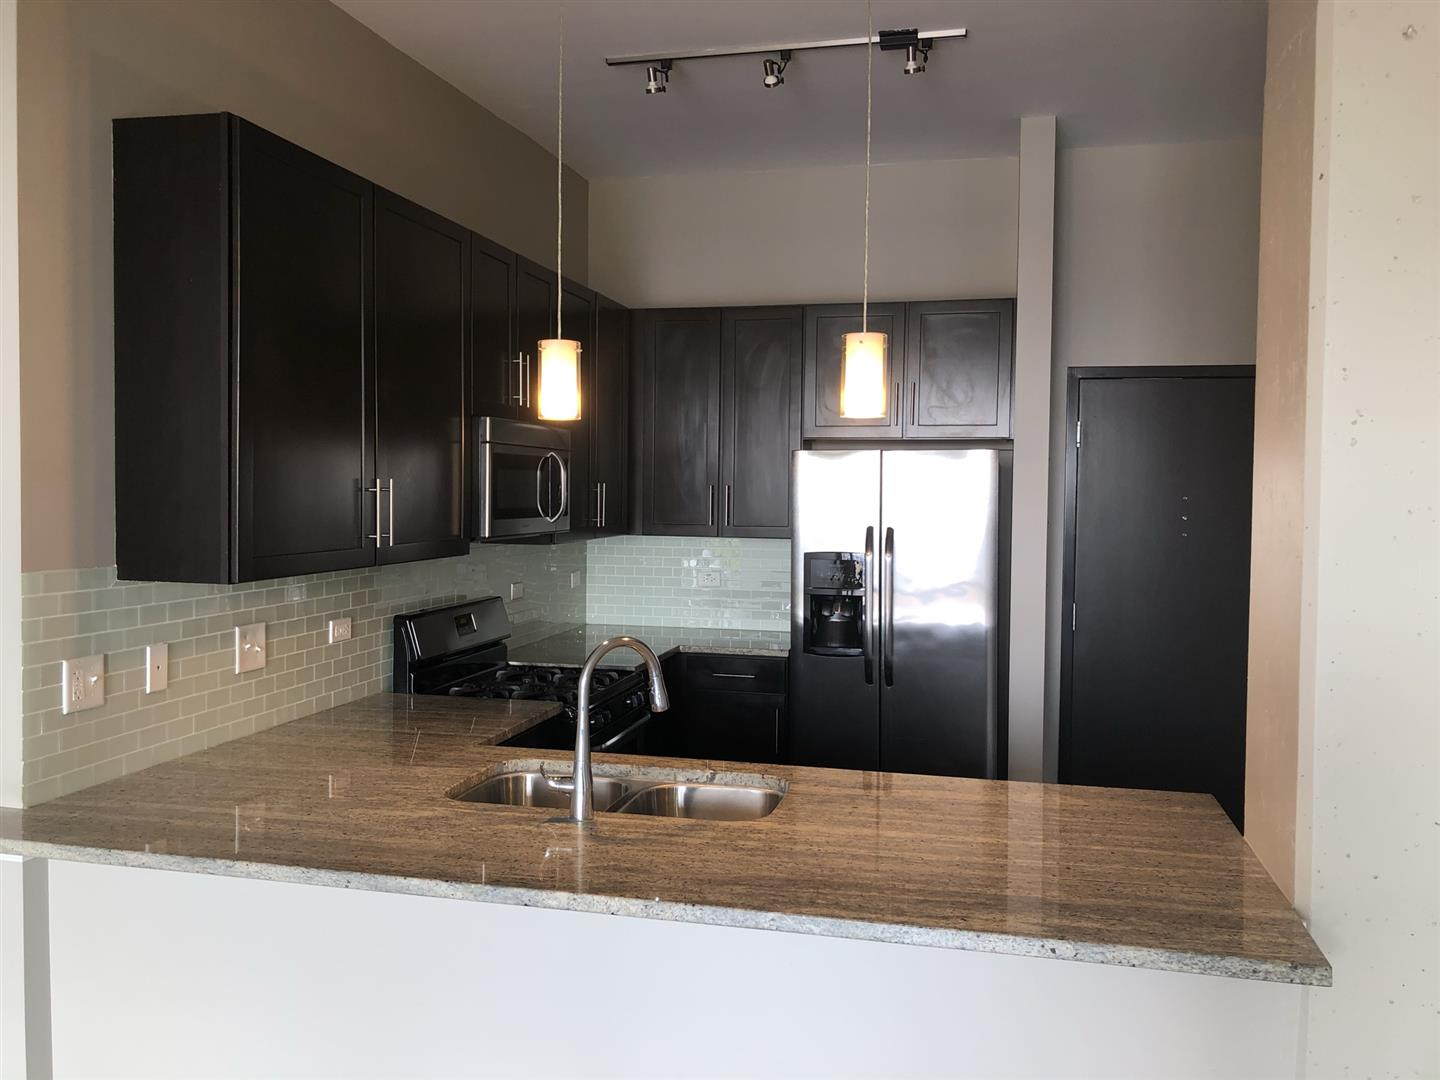 1-Bedroom House In Chicago